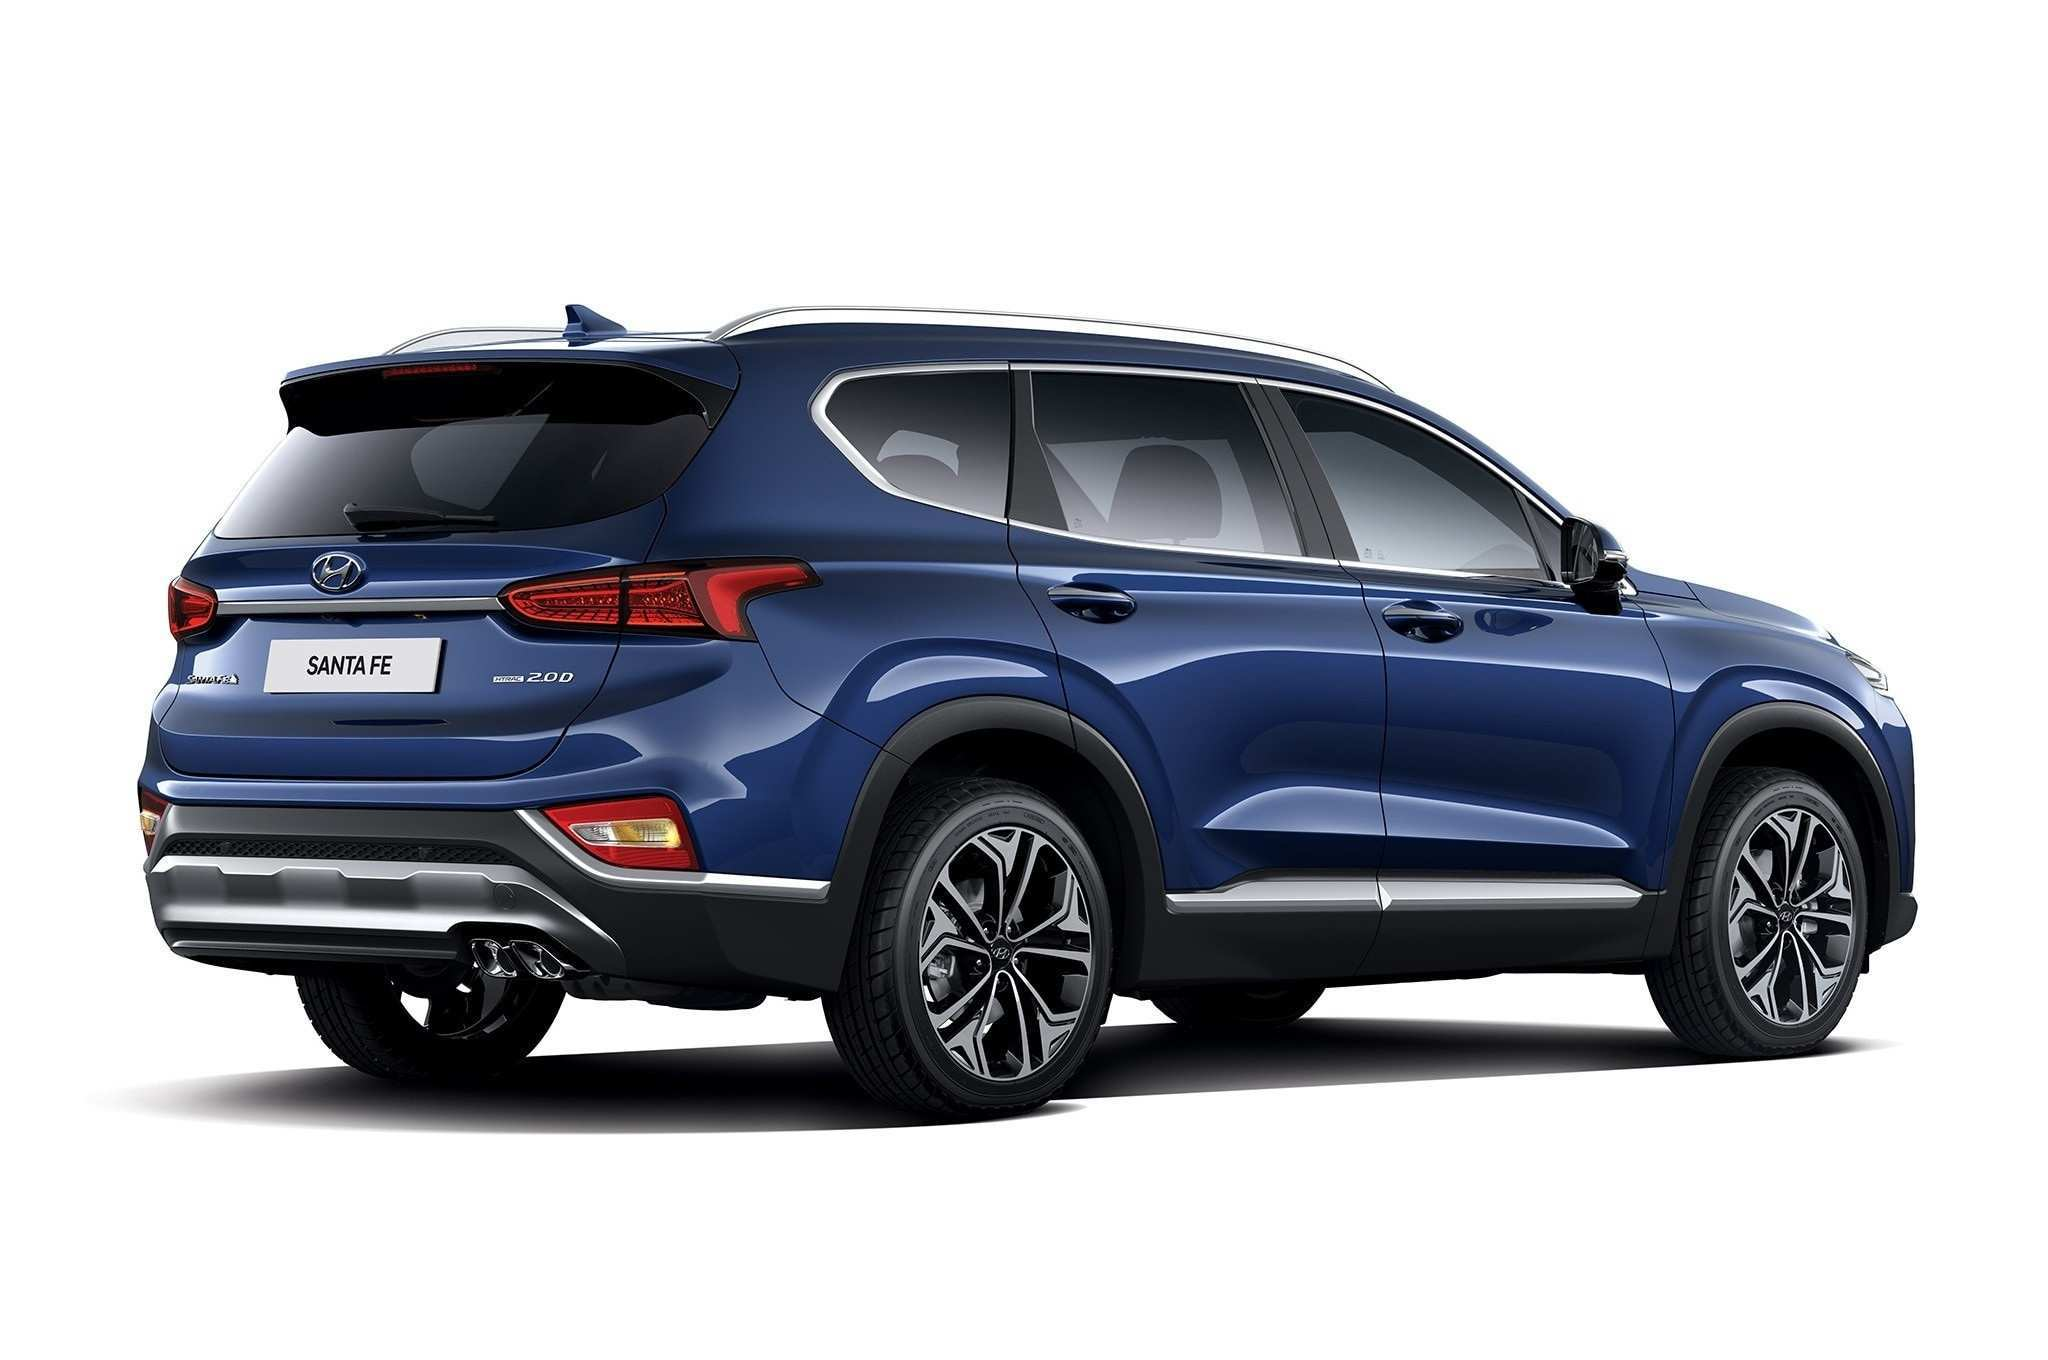 95 Best When Does The 2020 Hyundai Kona Come Out Engine